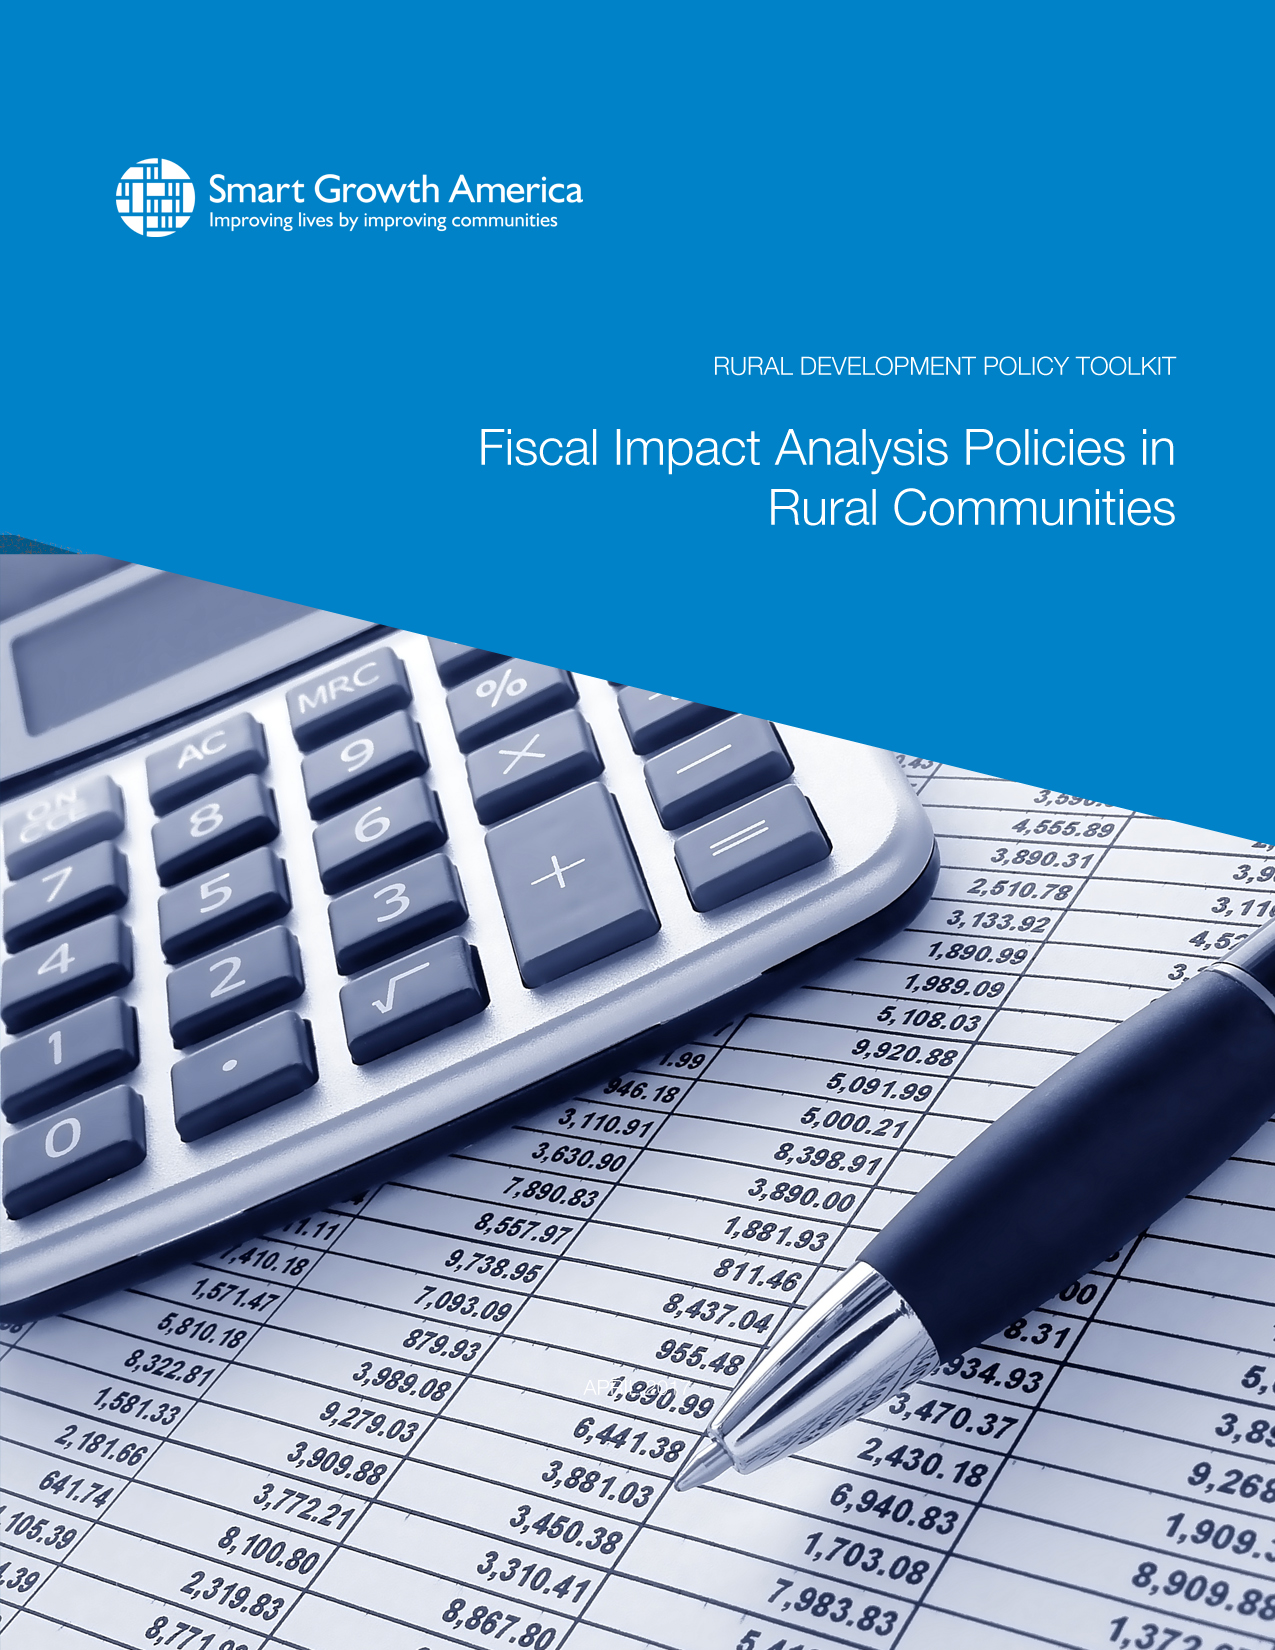 Fiscal Impact Analysis Policies in Rural Communities Toolkit